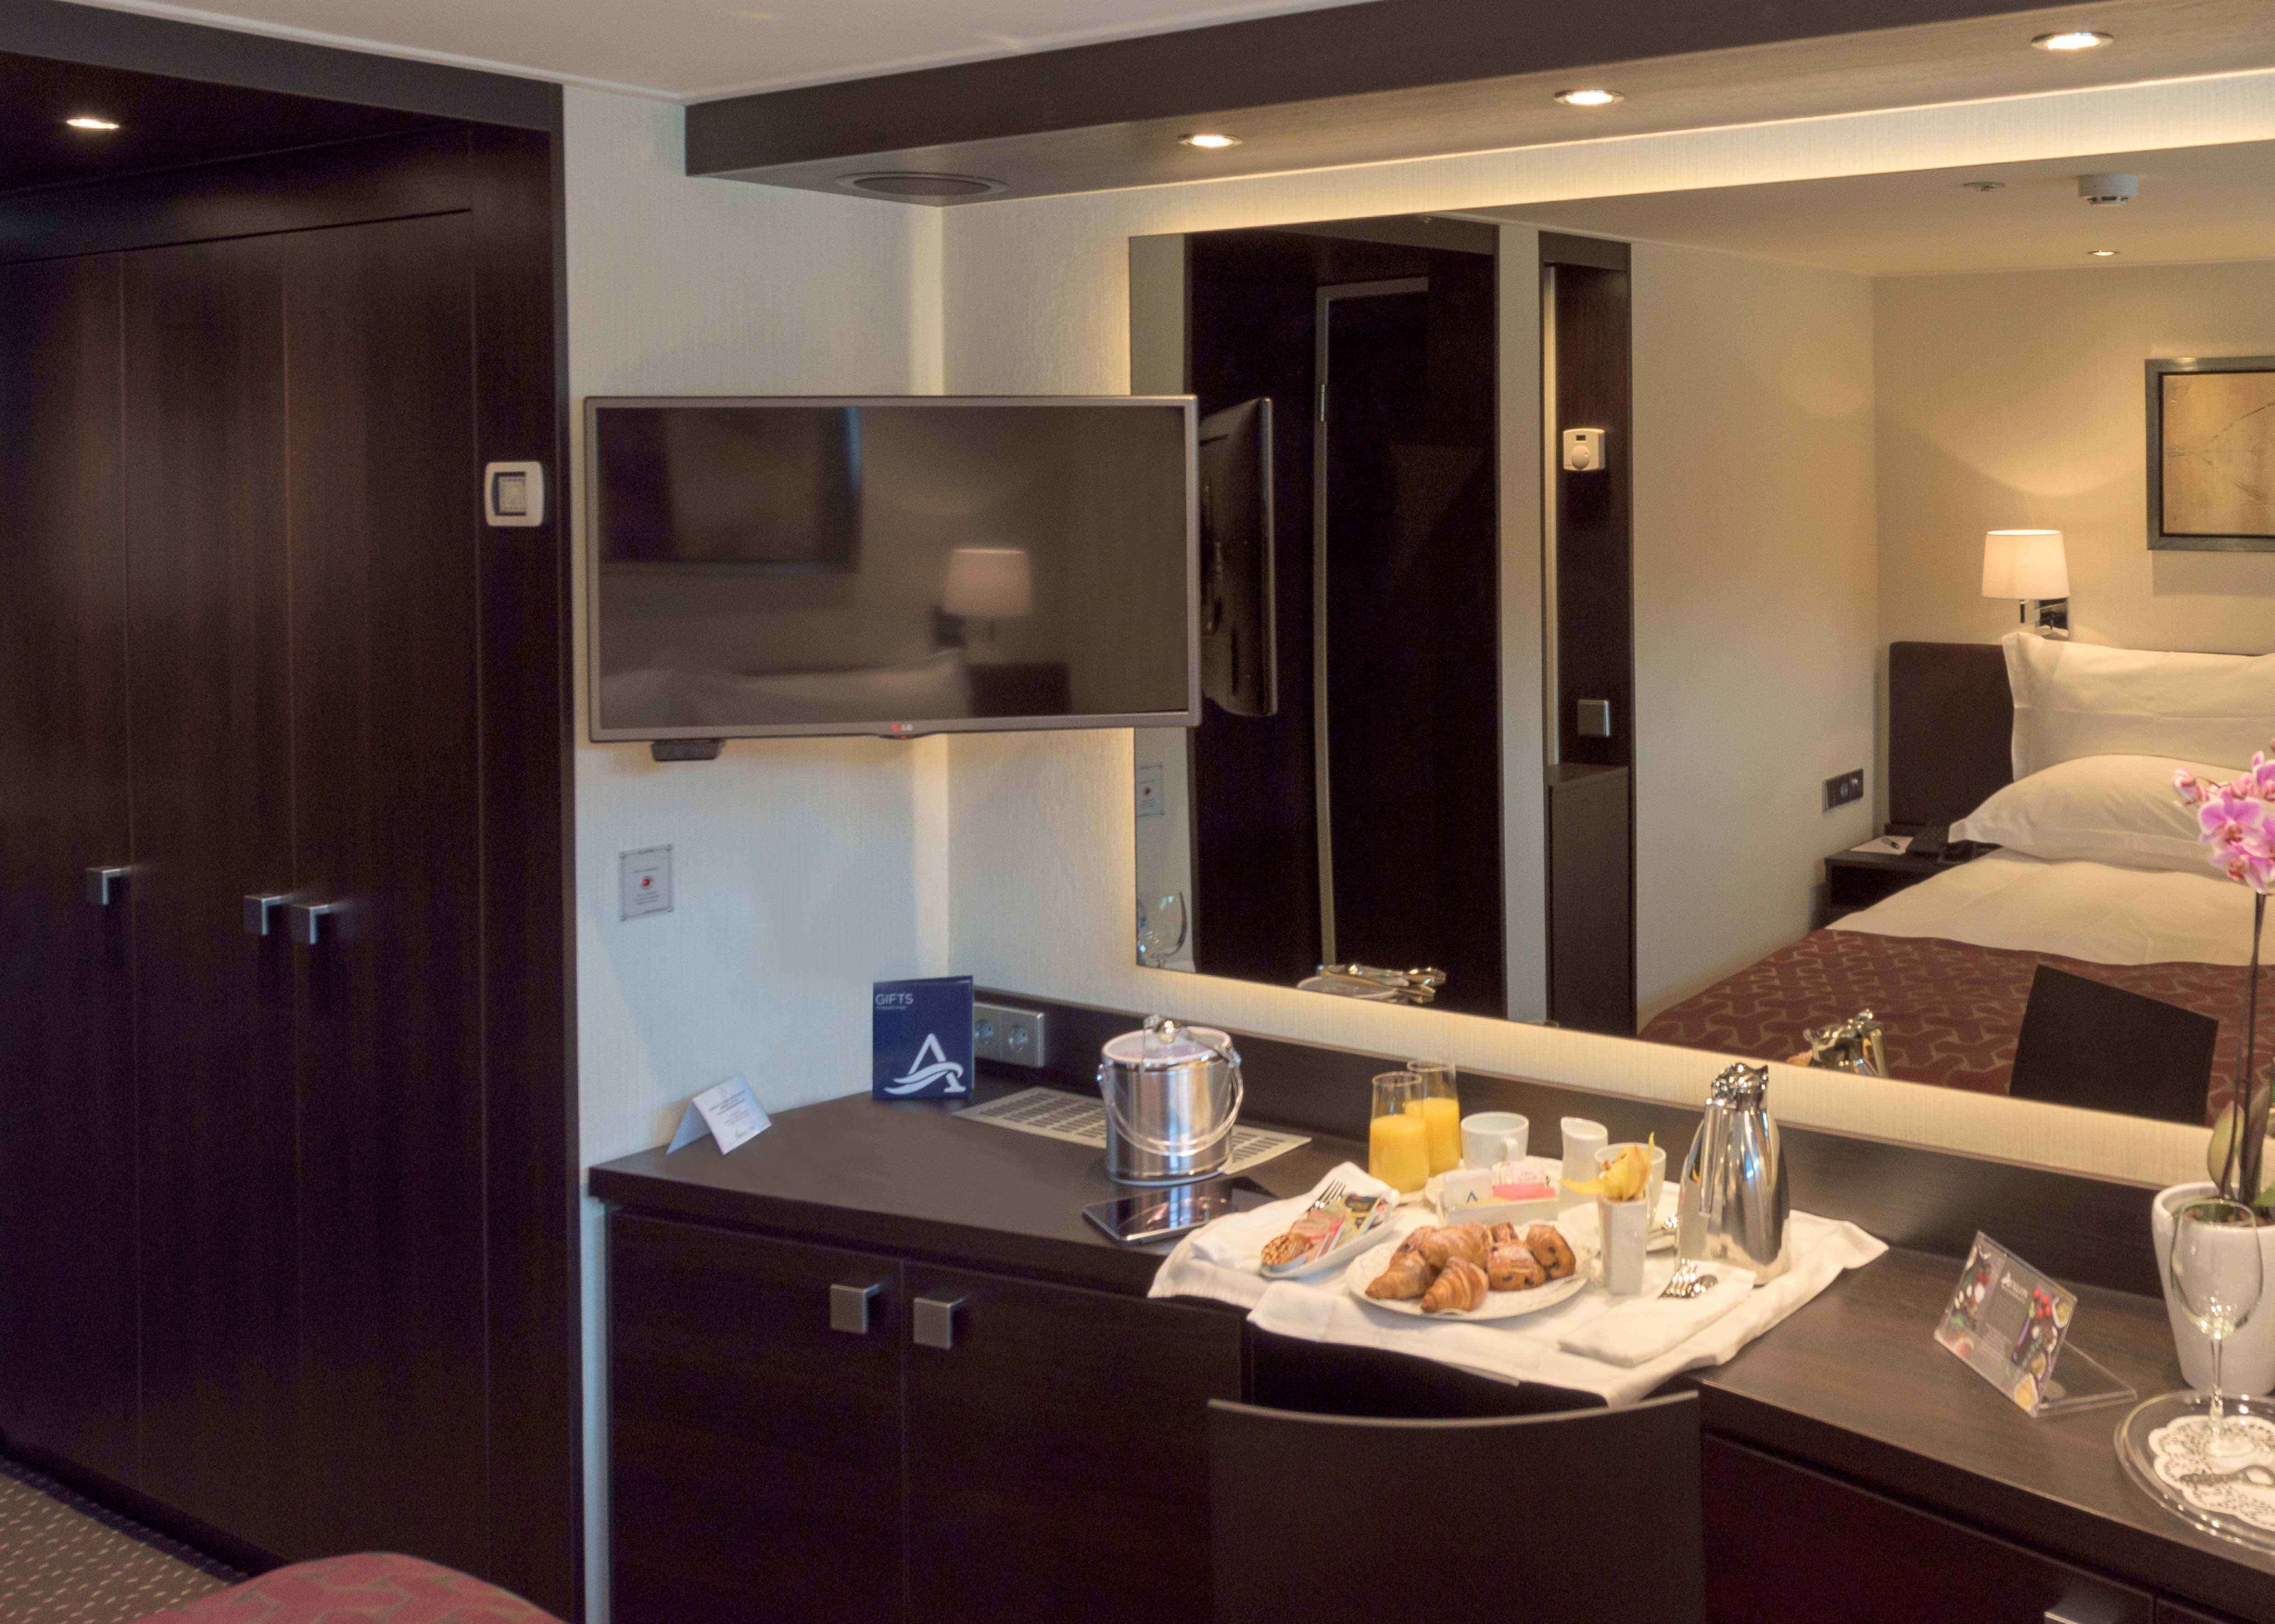 PASSION_deluxe_stateroom-2.jpg